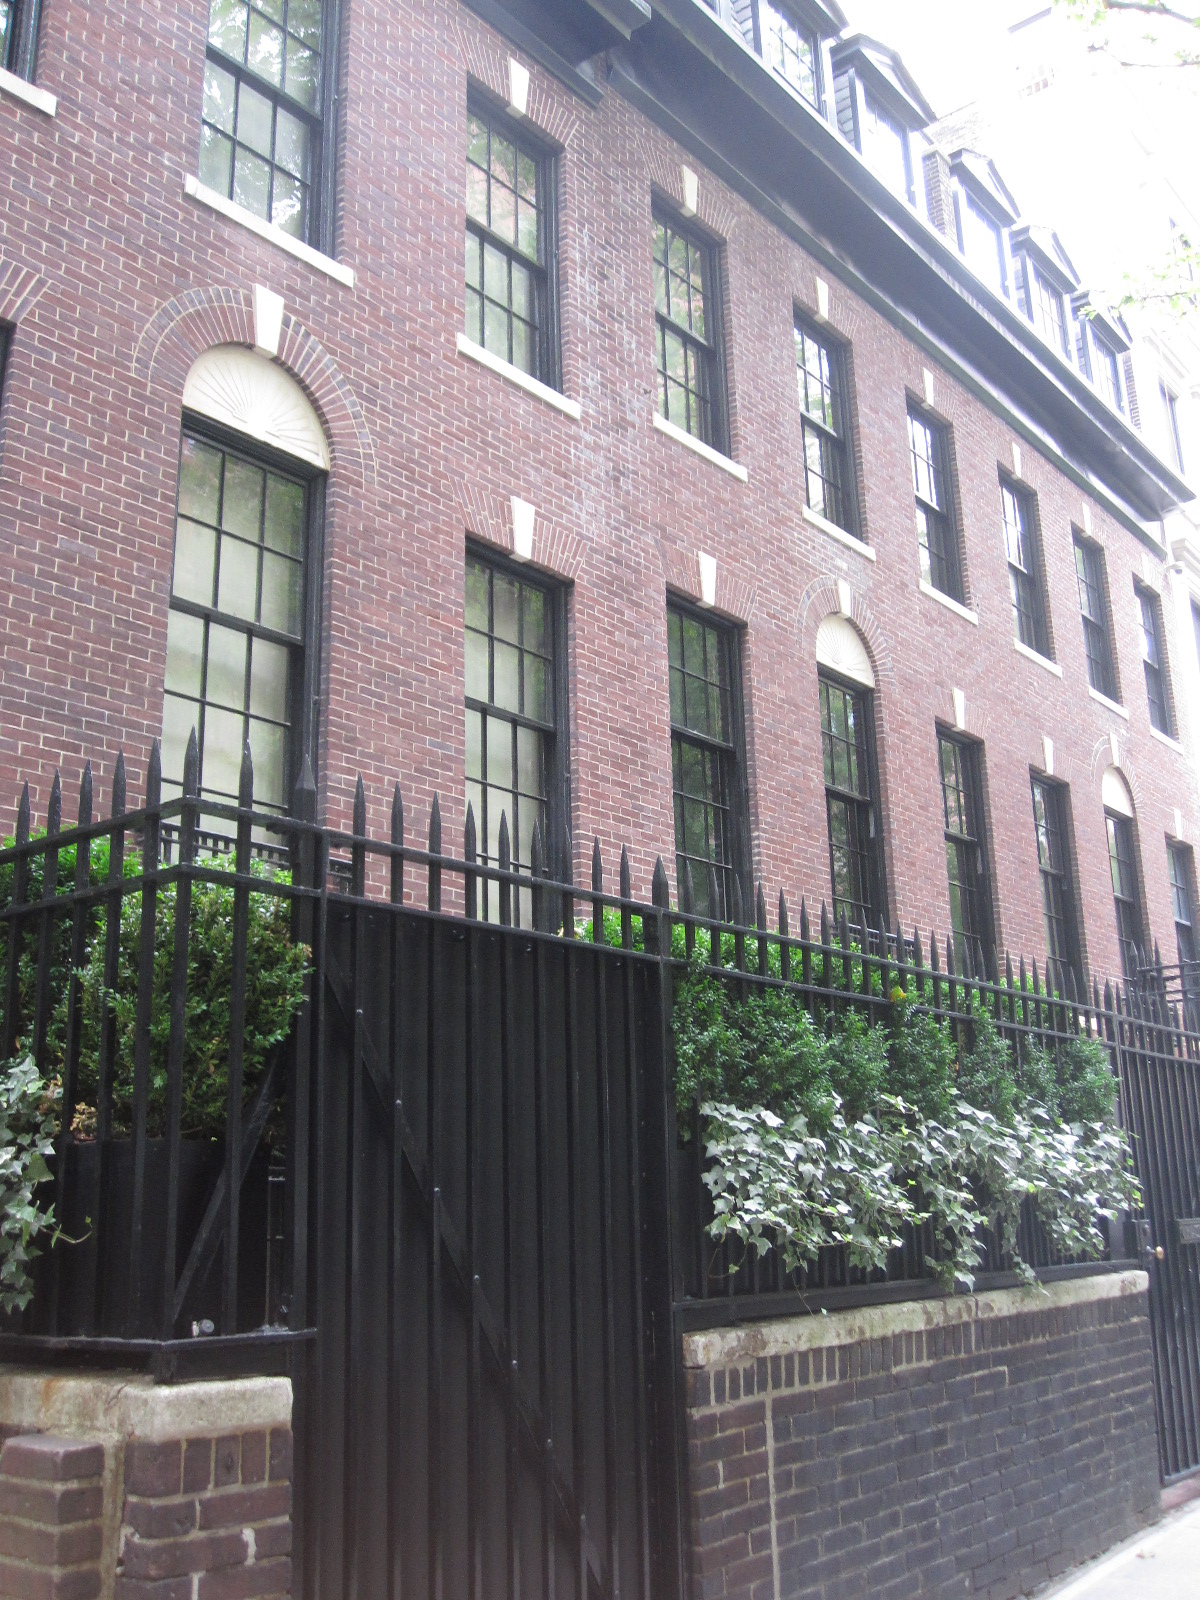 Madonnas house in New York